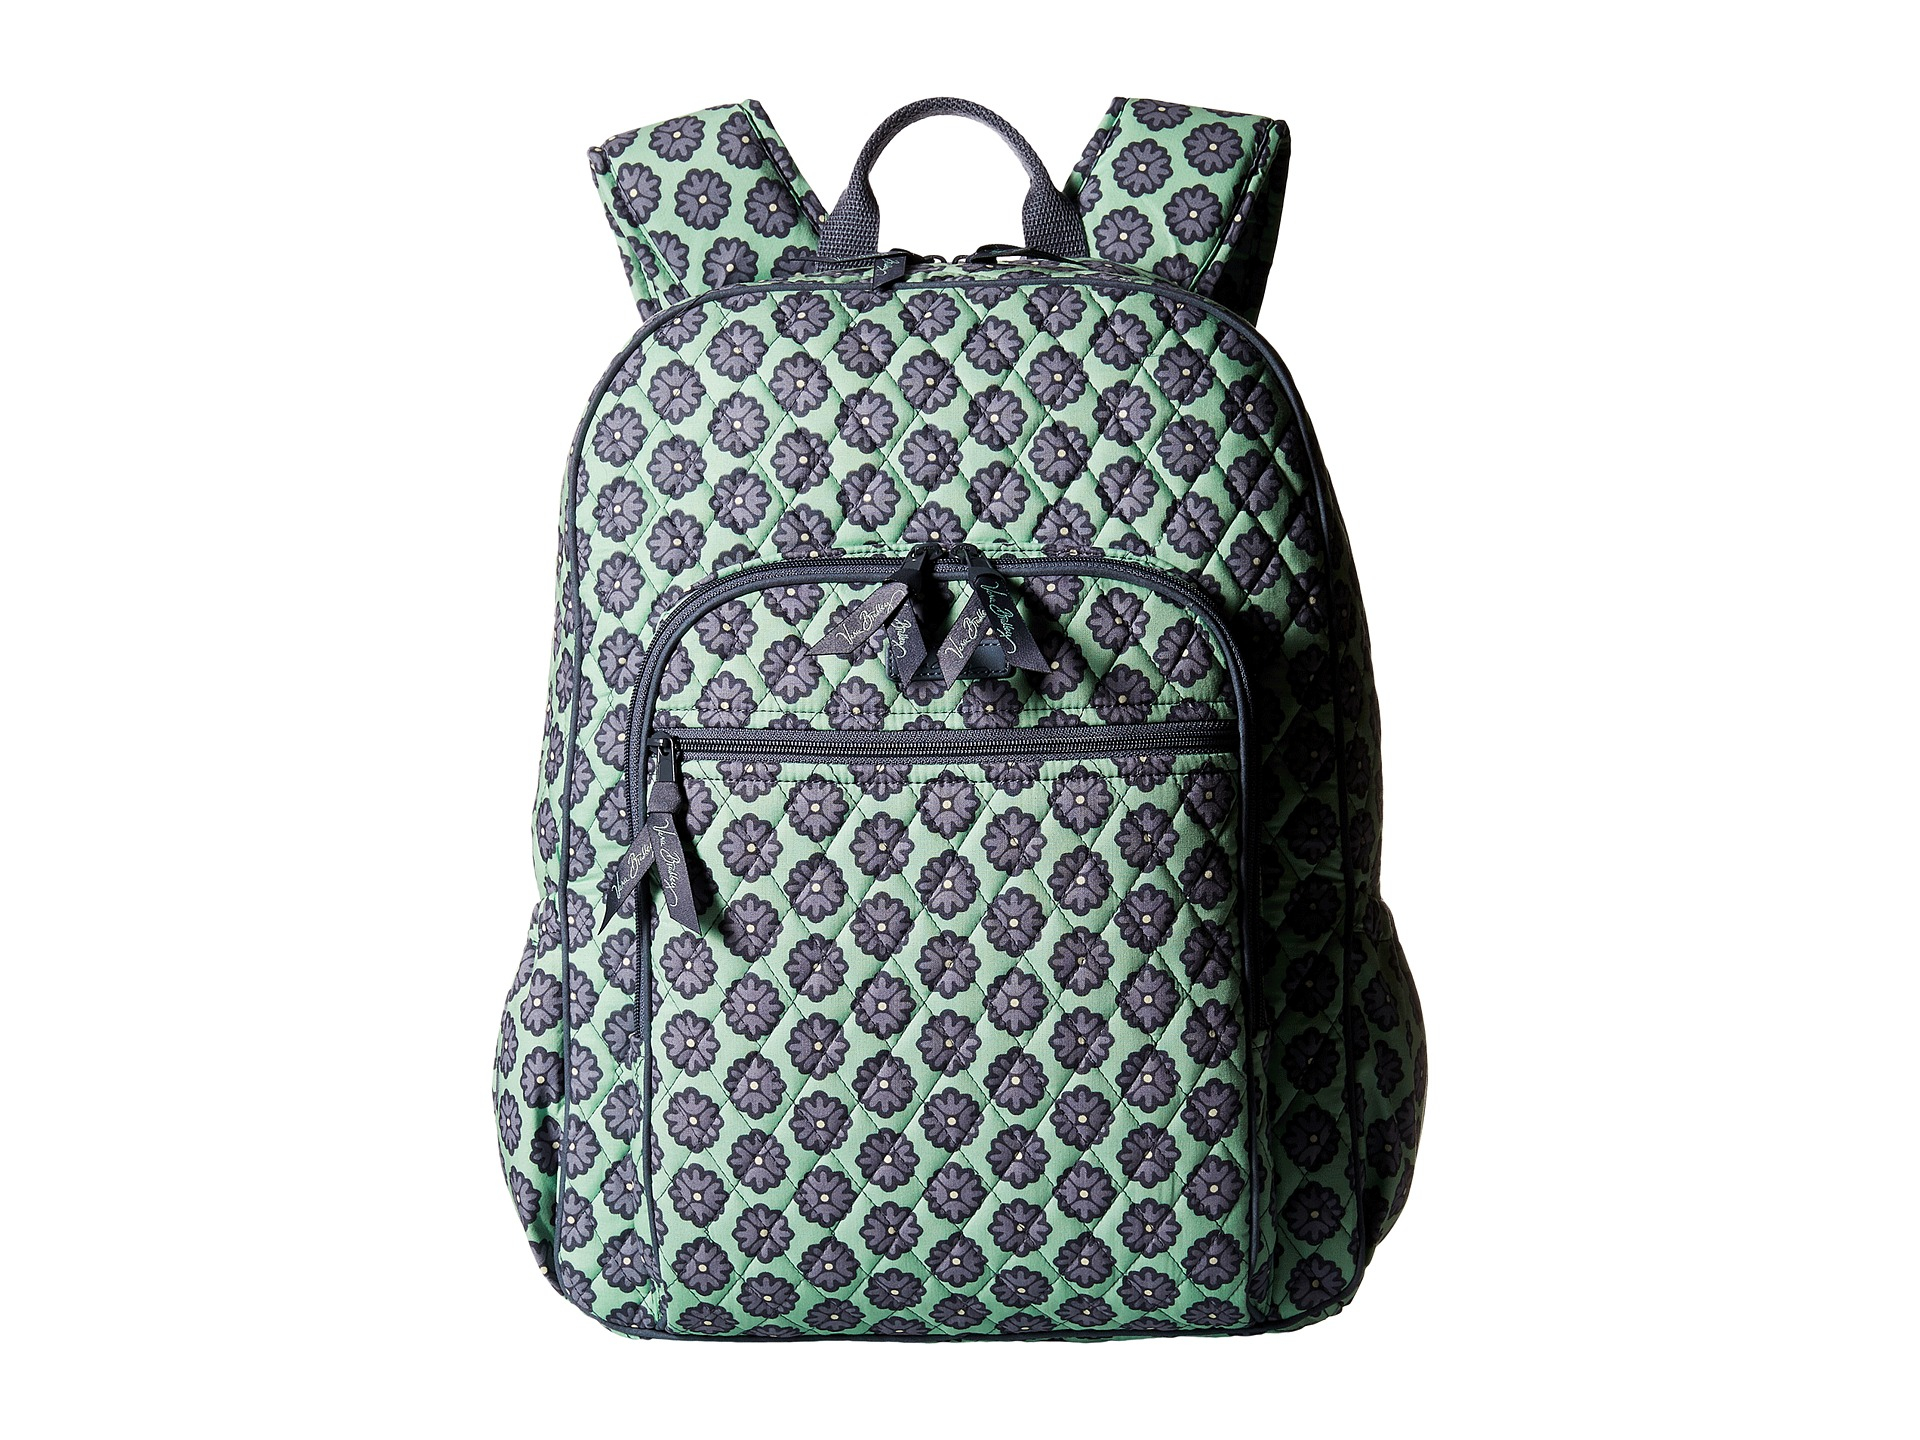 b37013c047 Lyst - Vera Bradley Campus Backpack in Green